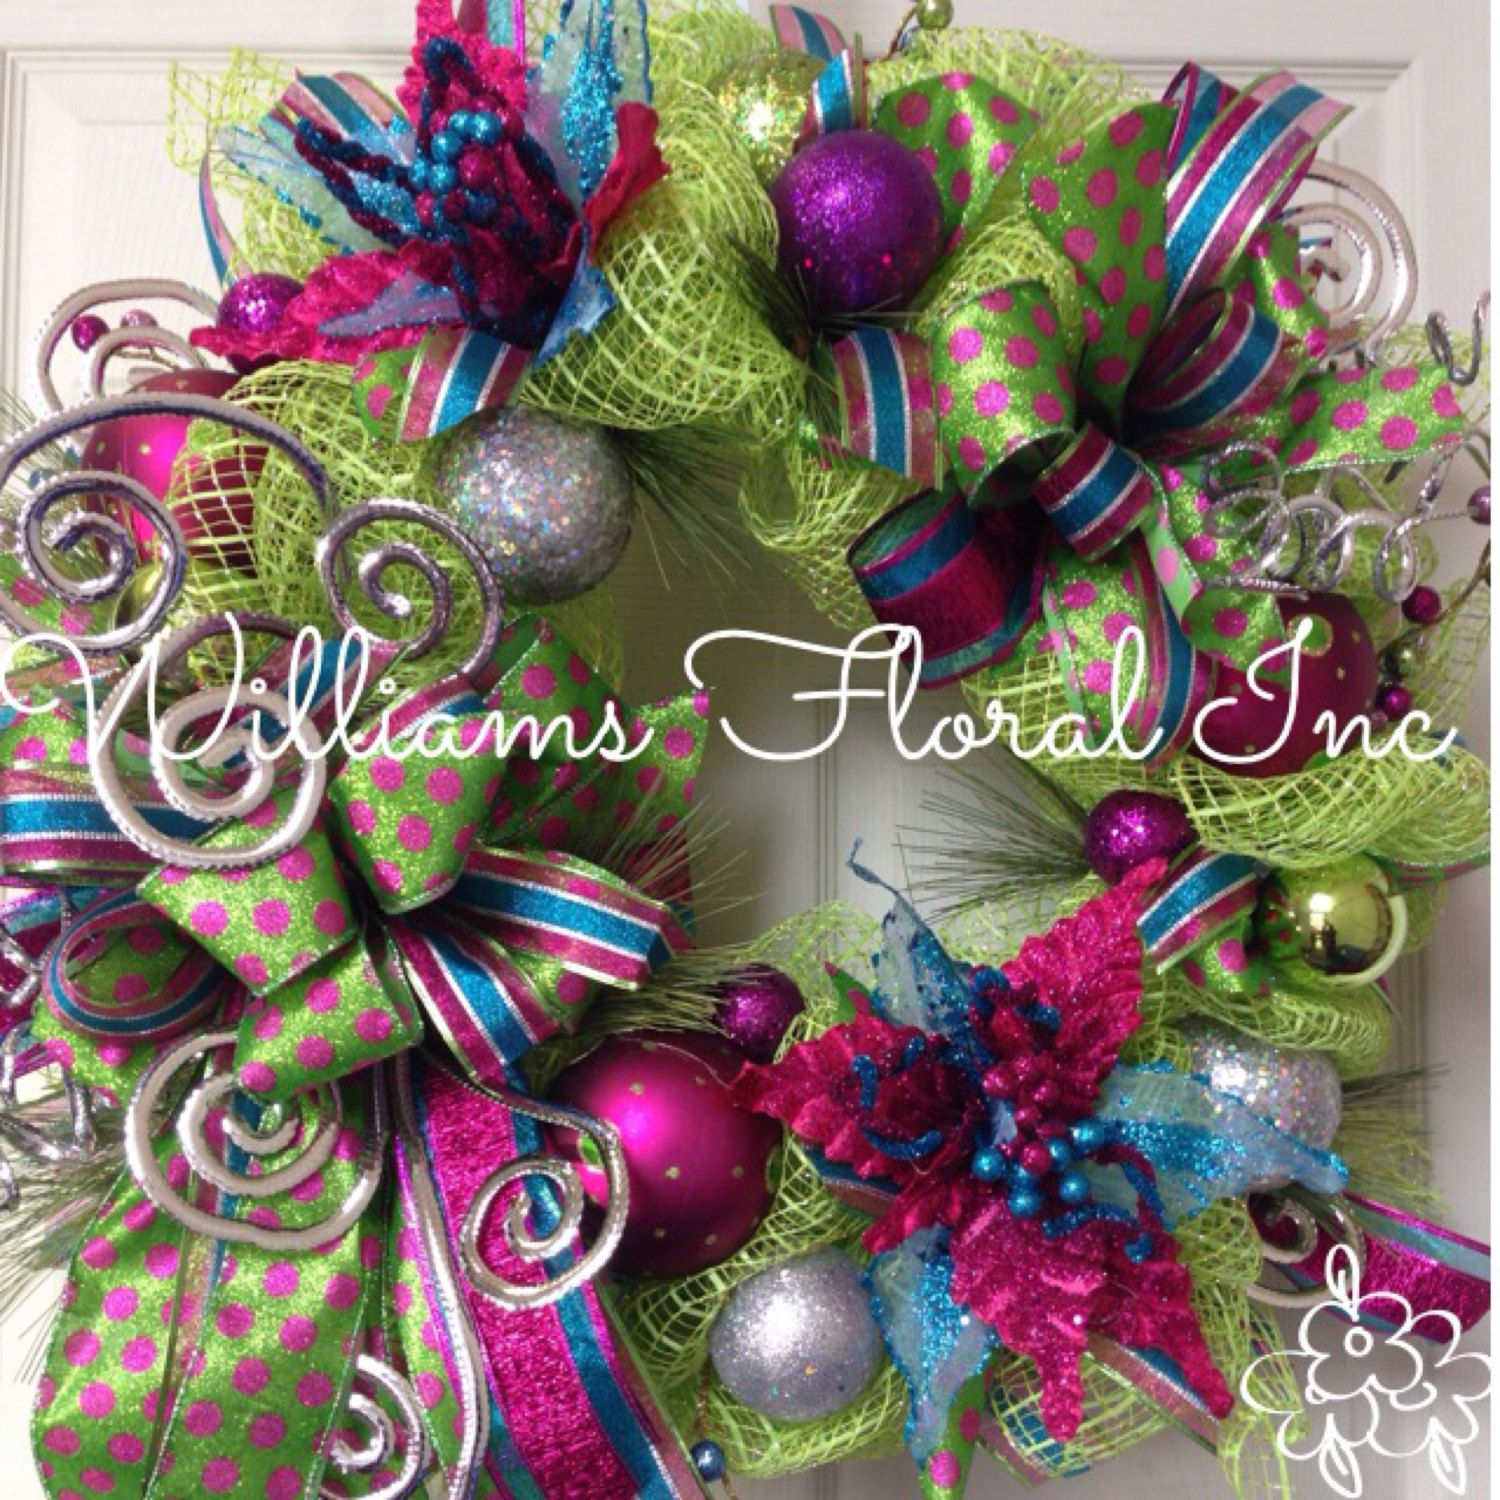 Candyland Pink Blue Christmas Wreath Mesh Wreath Whimsical By Williamsfloral On Etsy With Images Christmas Wreaths Christmas Wreaths Diy Christmas Mesh Wreaths